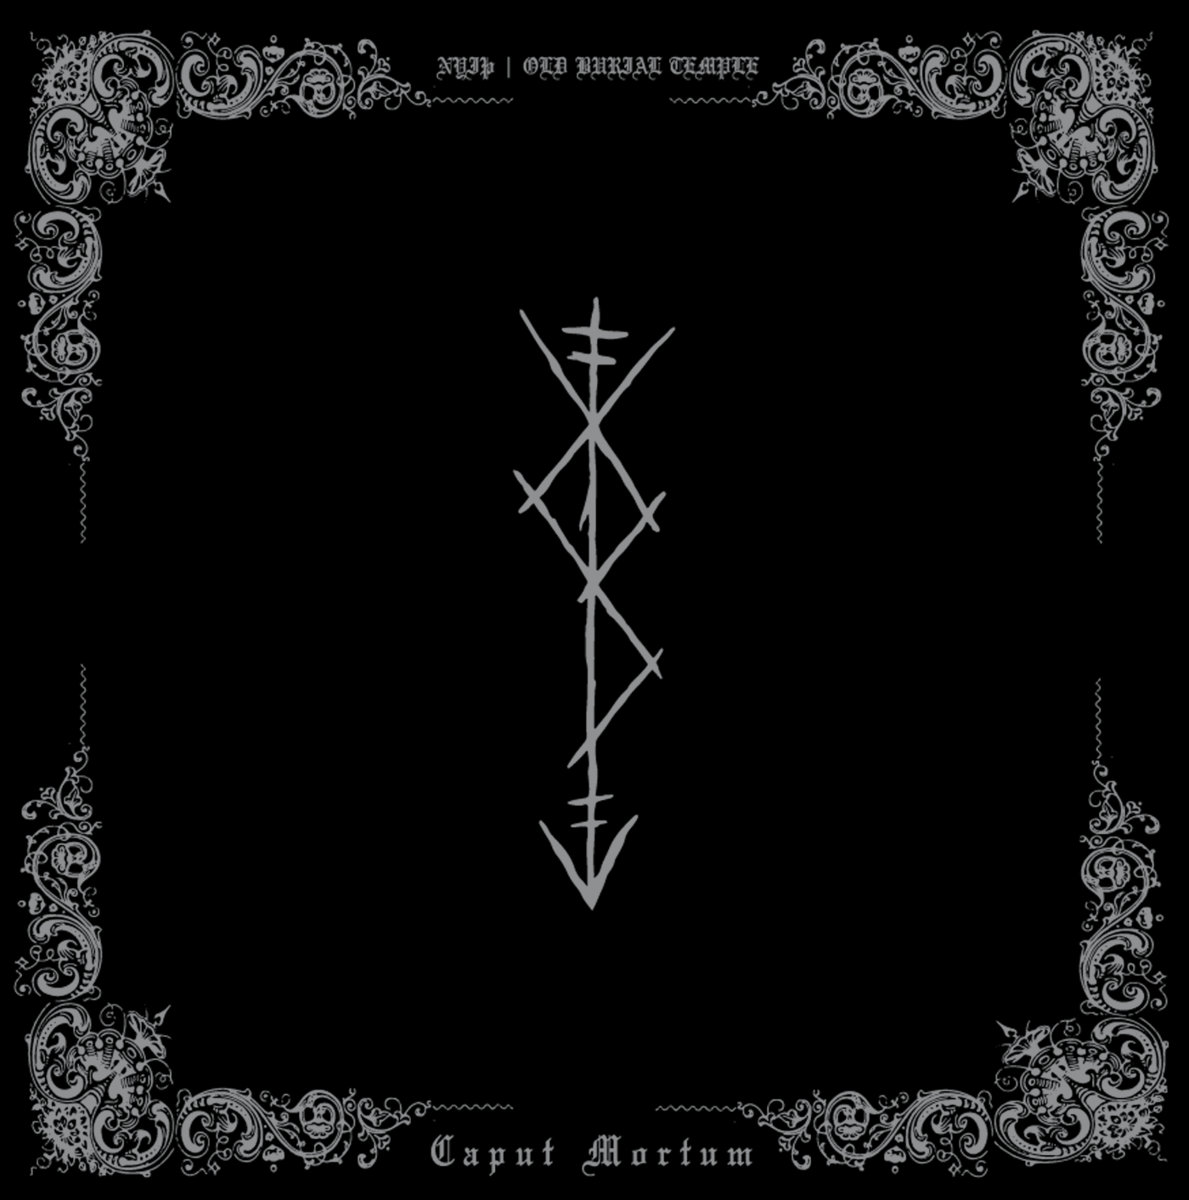 NYIÞ / OLD BURIAL TEMPLE - Caput Mortum